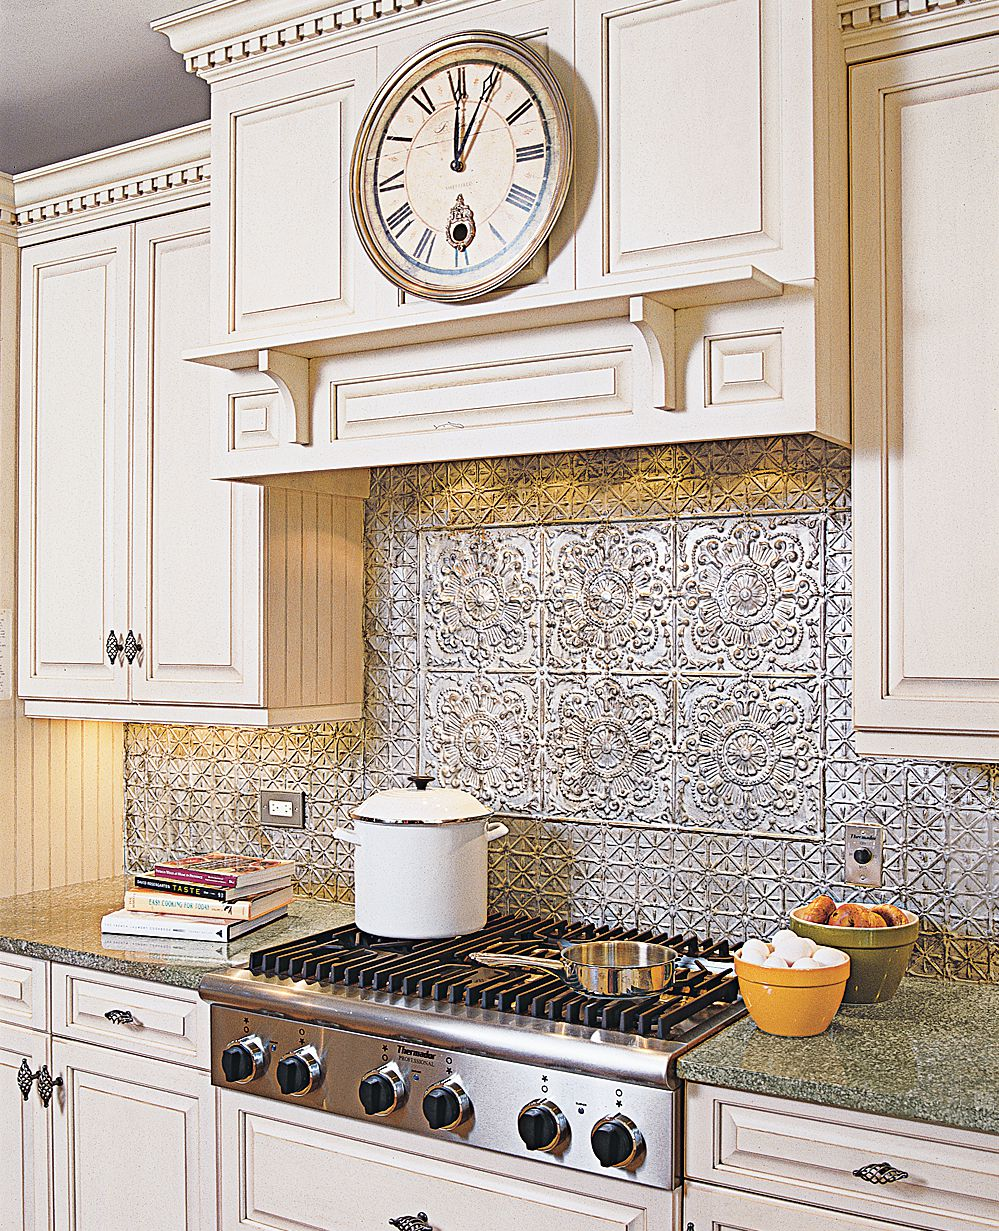 What Are The Best Backsplash Materials For Your Kitchen This Old House